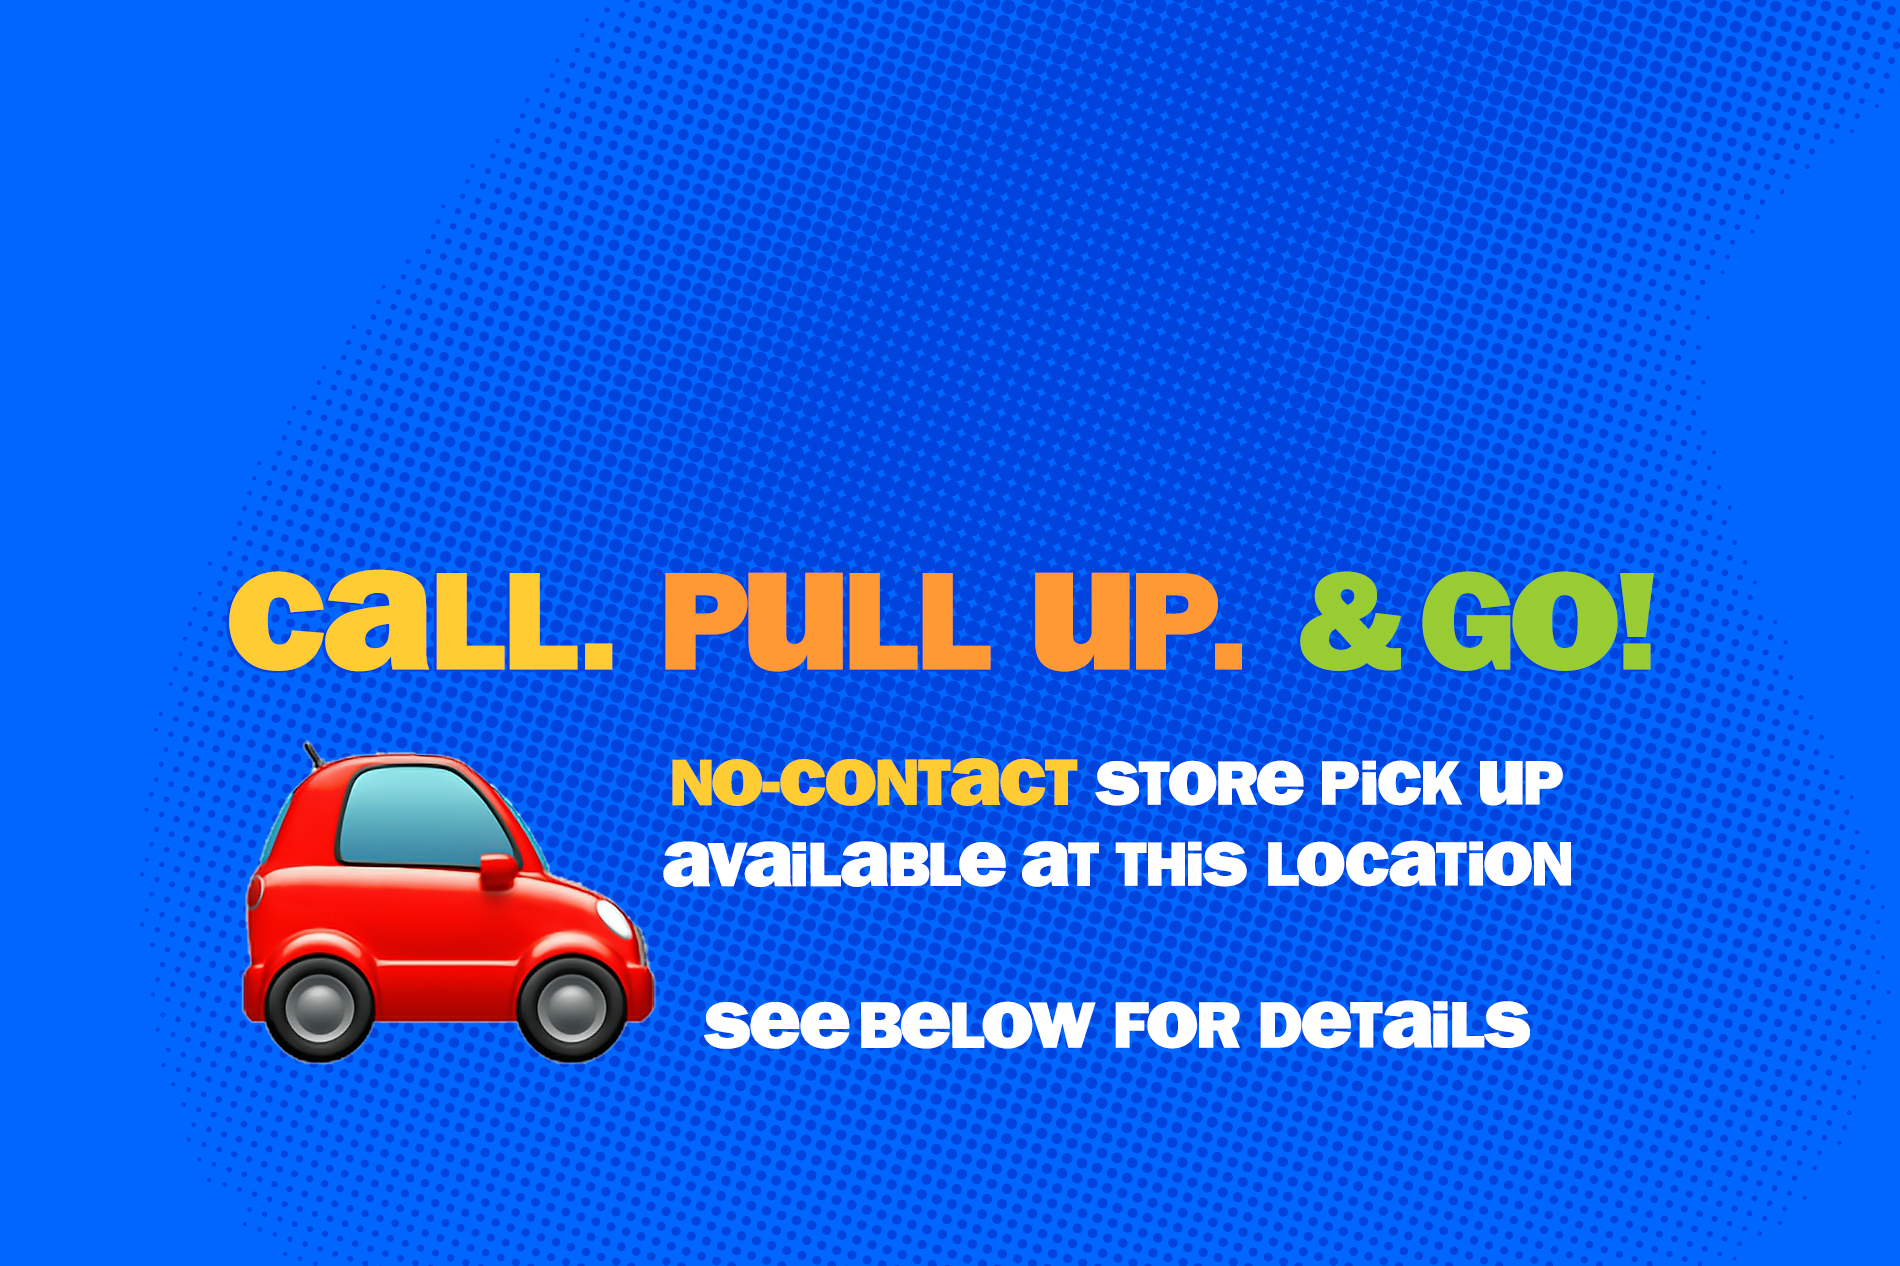 Now Open For No-Contact Curbside Pick Up! Call, Pull Up & Go!  For Top Sellers.